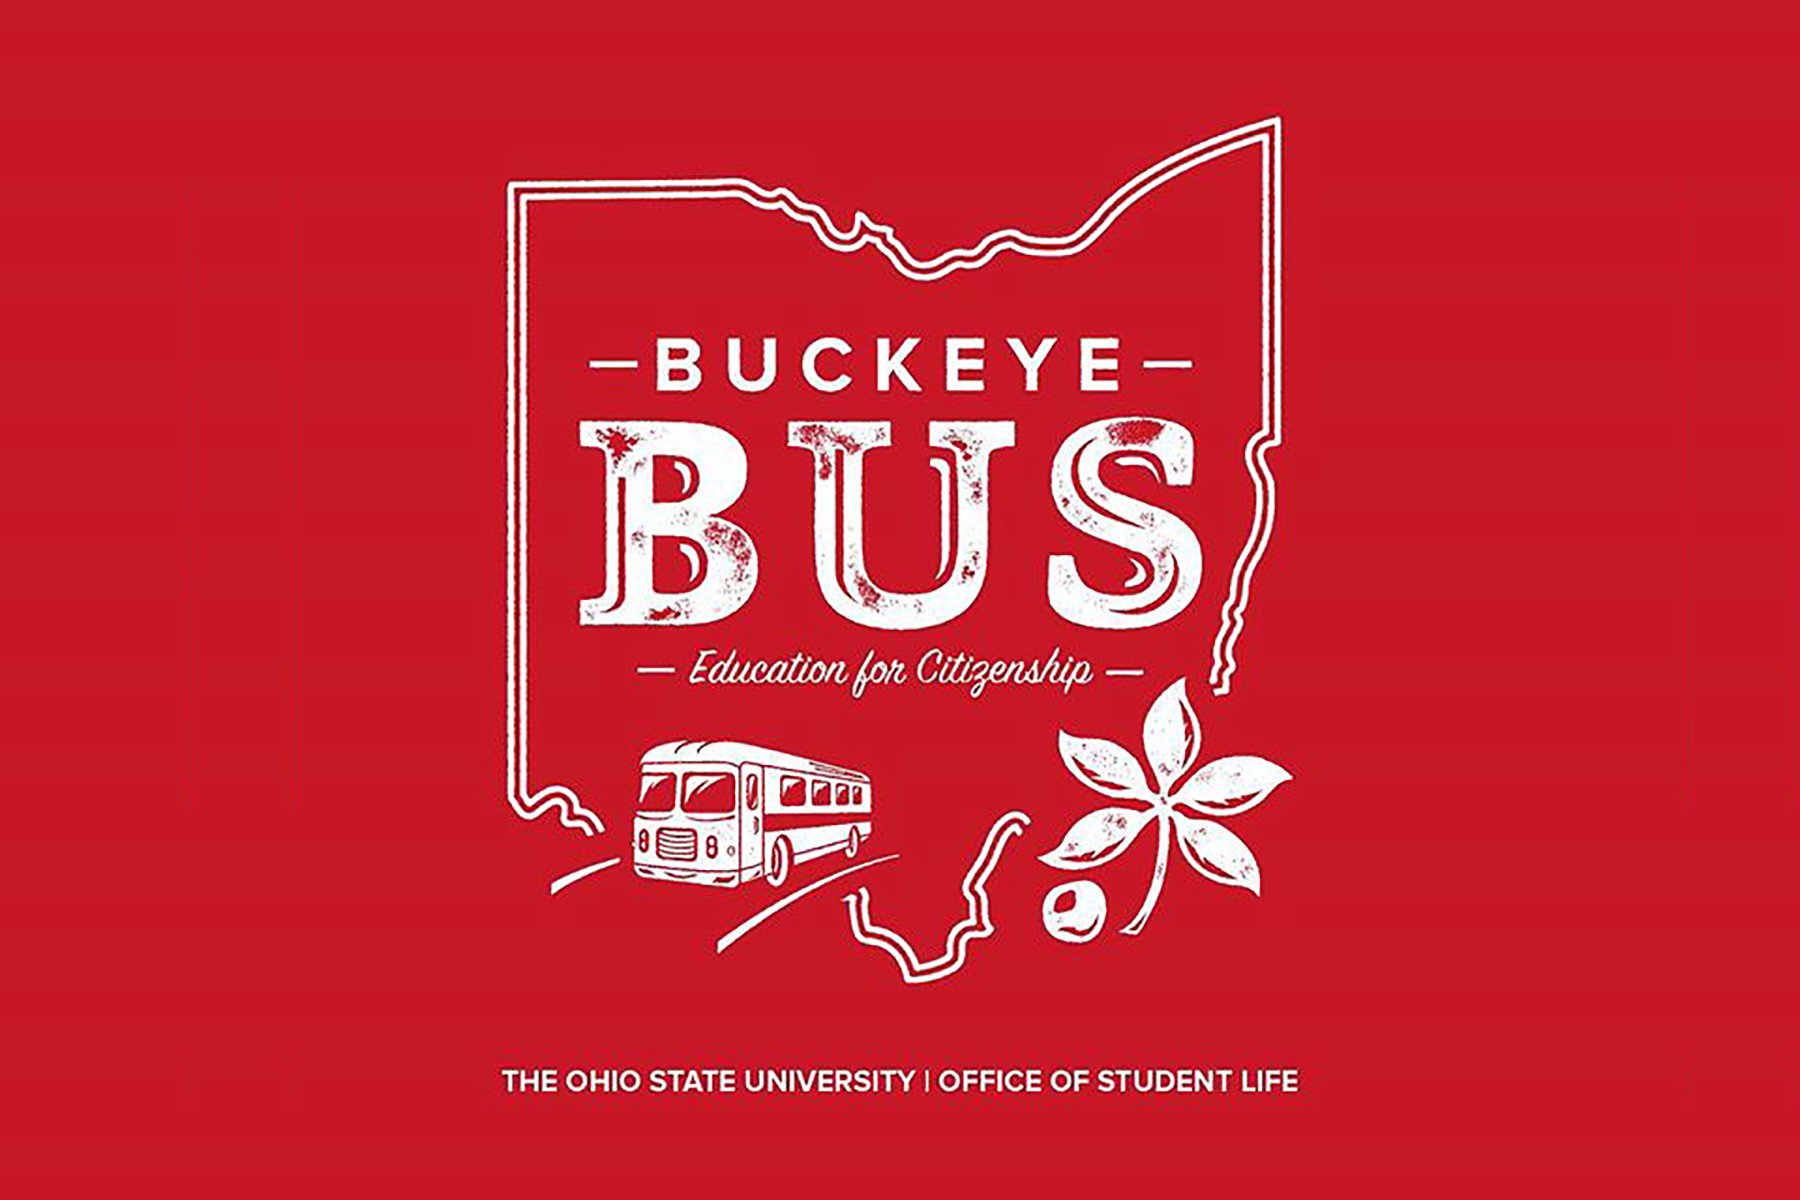 The first #BuckeyeBus trip of the summer starts TOMORROW 😄 We'll be visiting Southeast Ohio - follow along on Twitter and Instagram! https://t.co/YlHNKljTMy